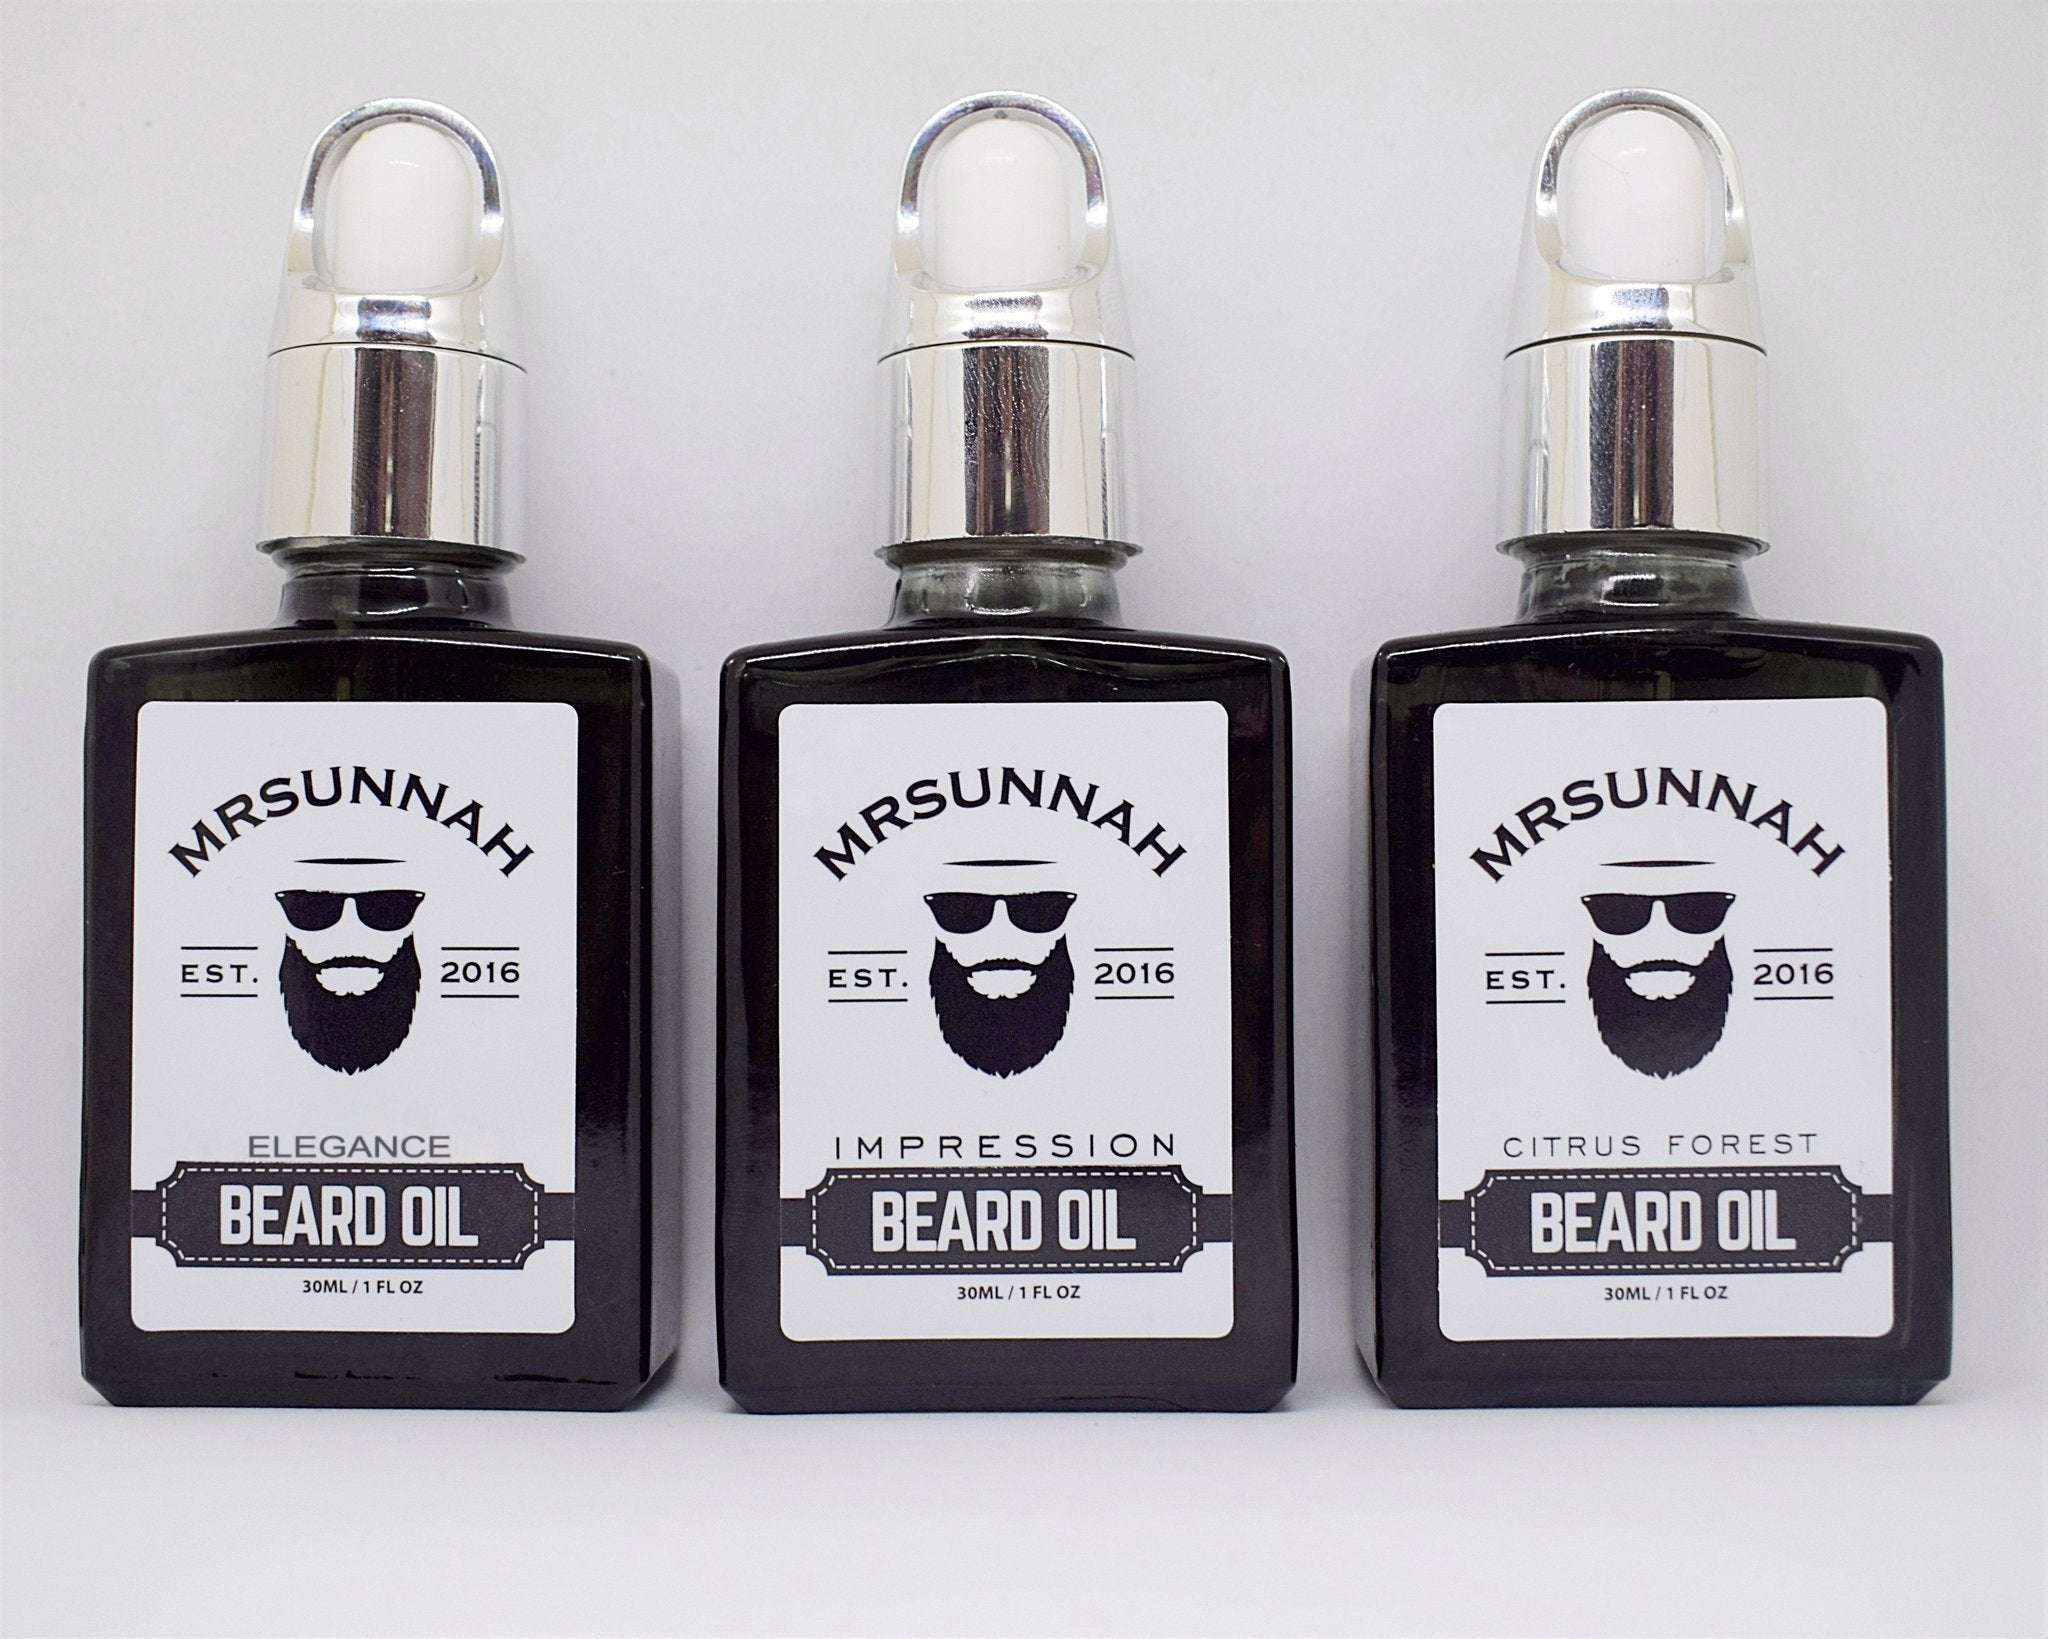 3 Beard Oil Set (30ml) - Mrsunnah Grooming Co